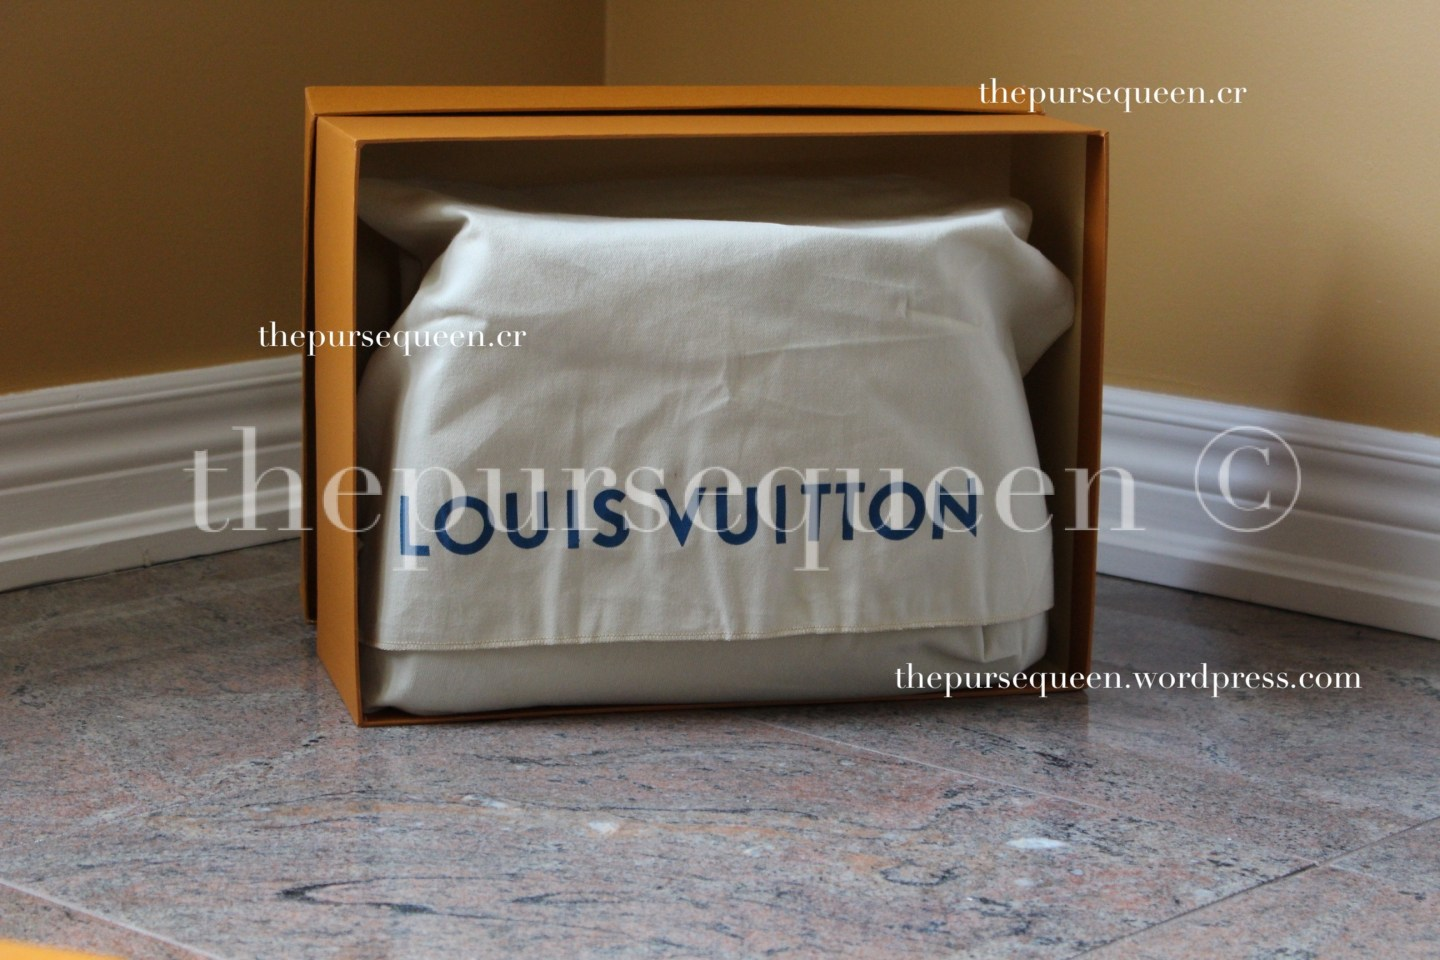 louis vuitton montaigne replica #replicabag #replicabags